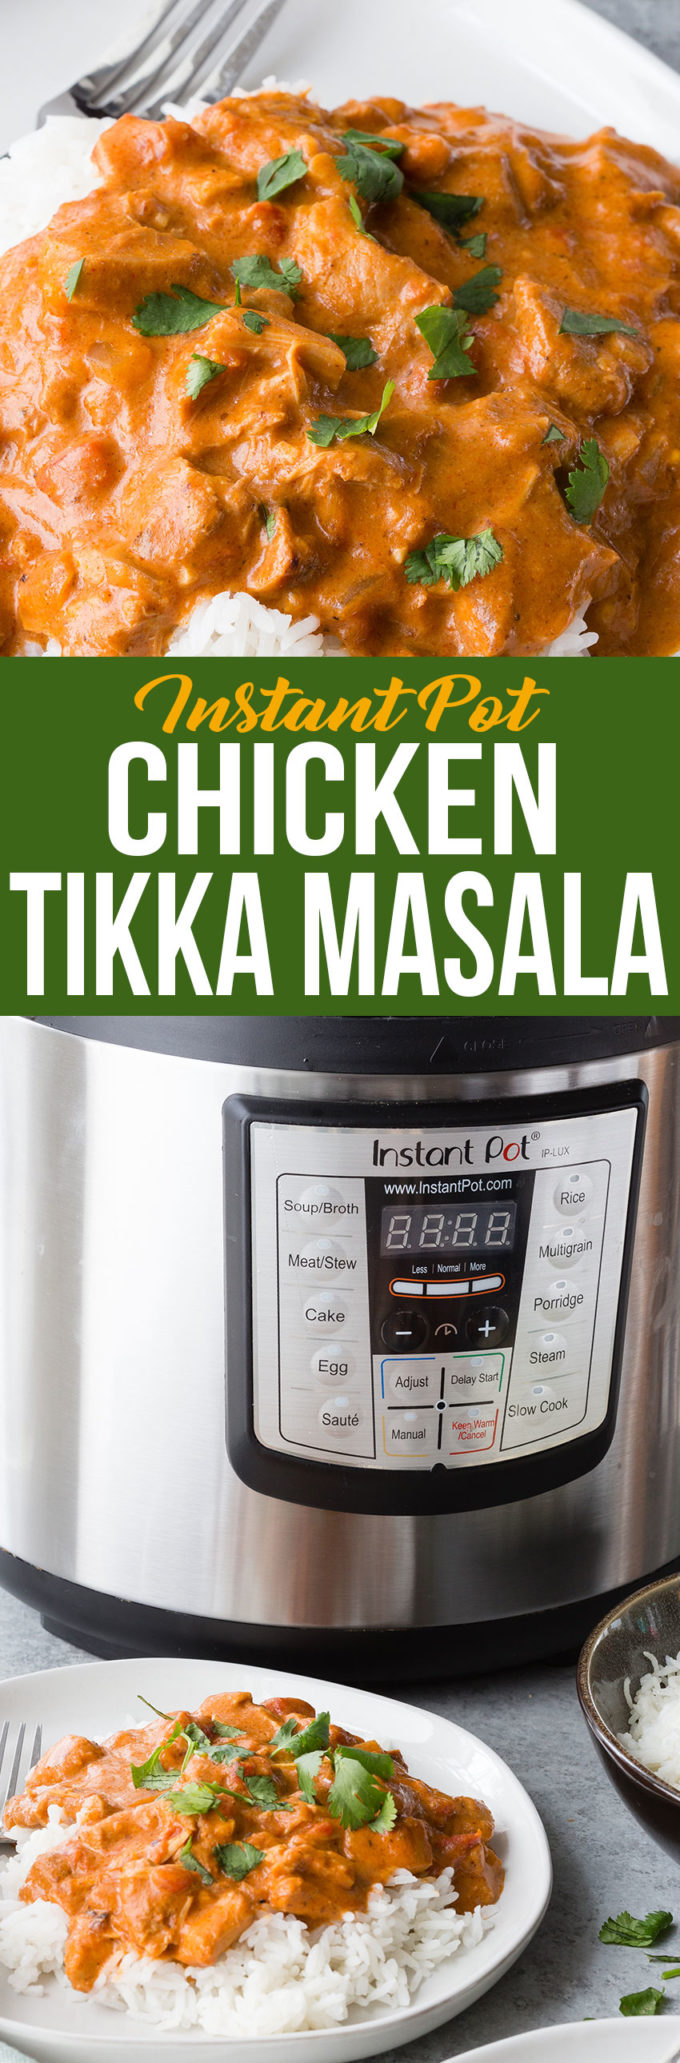 Easy to make instant pot chicken tikka masala, rich creamy tomato sauce, chunks of tender chicken and so much spice. Yum!